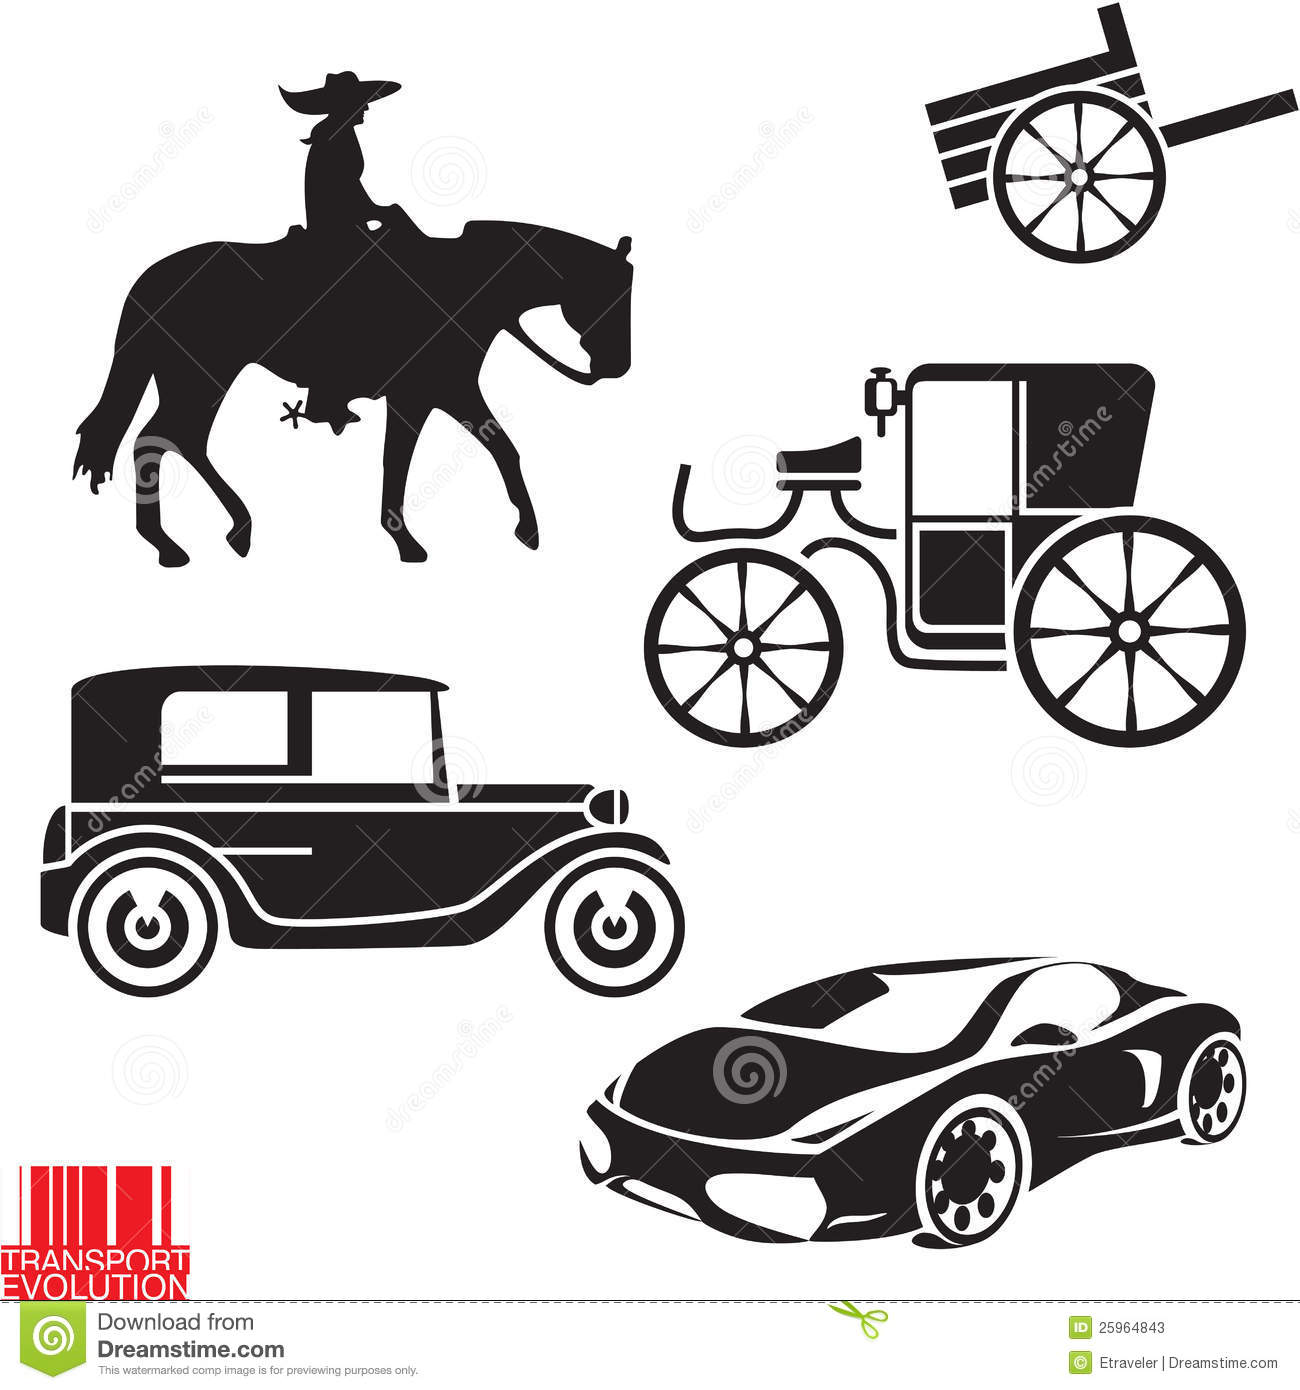 A BRIEF HISTORY OF TRANSPORT